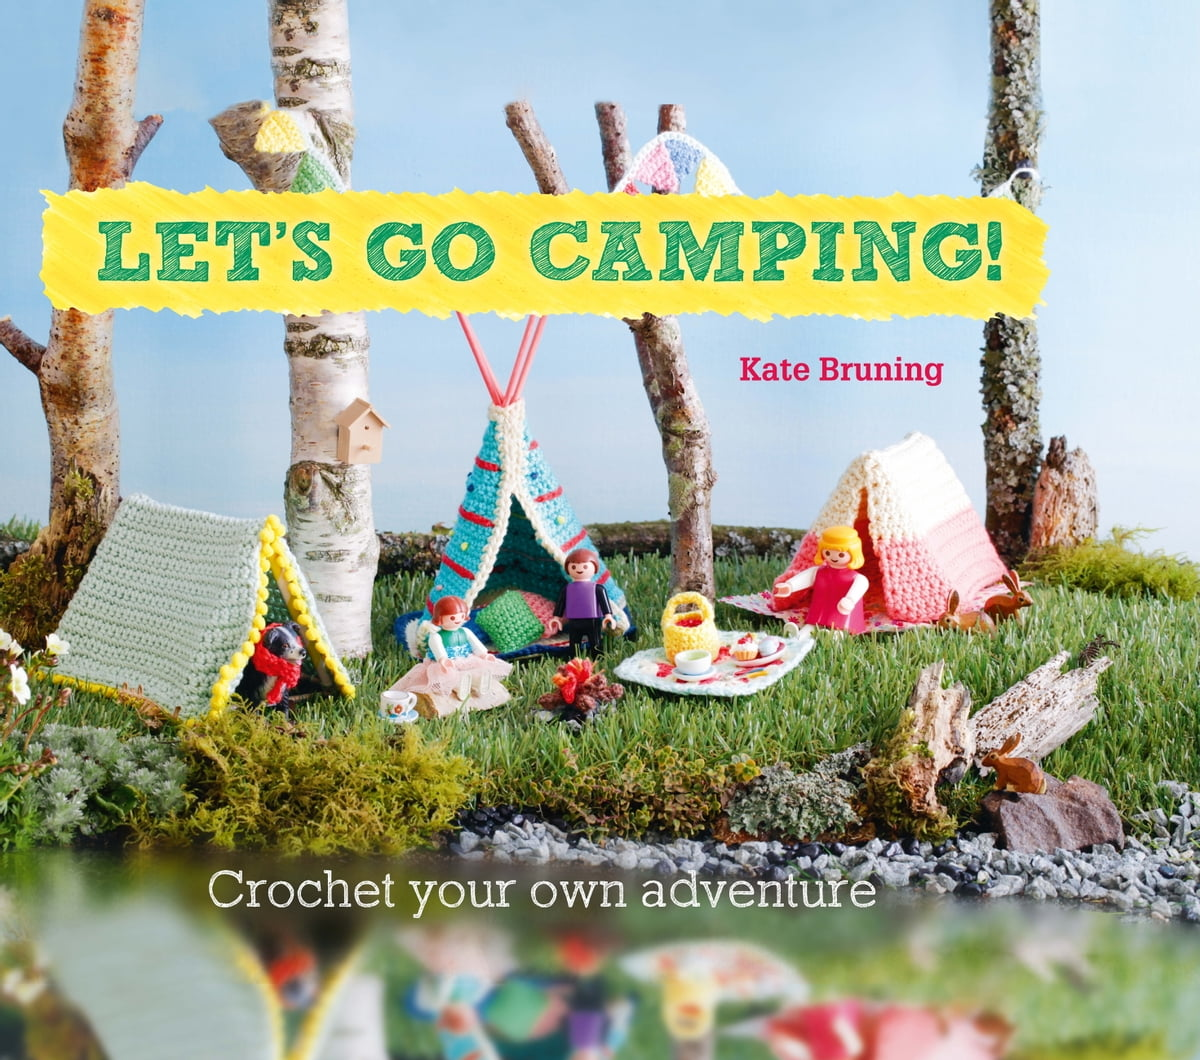 Let's Go Camping! From cabins to caravans, crochet your own camping Scenes  eBook by Kate Bruning | Rakuten Kobo